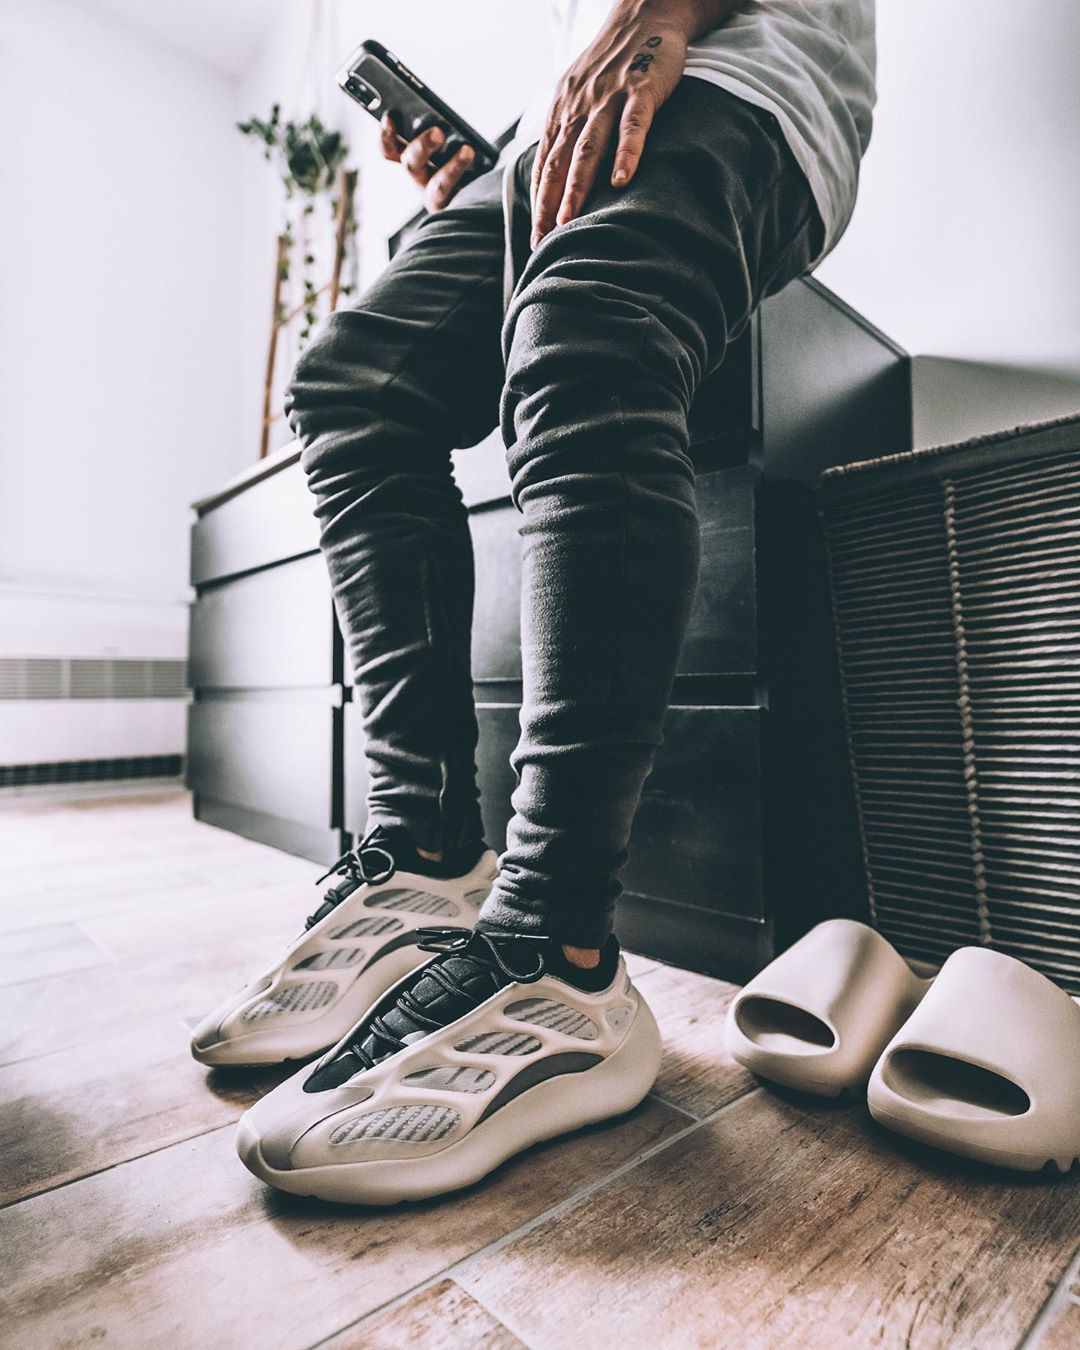 Adidas Yeezy 700 V3 Azael In 2020 Mens Streetwear Jackets Men Fashion Yeezy Sneakers